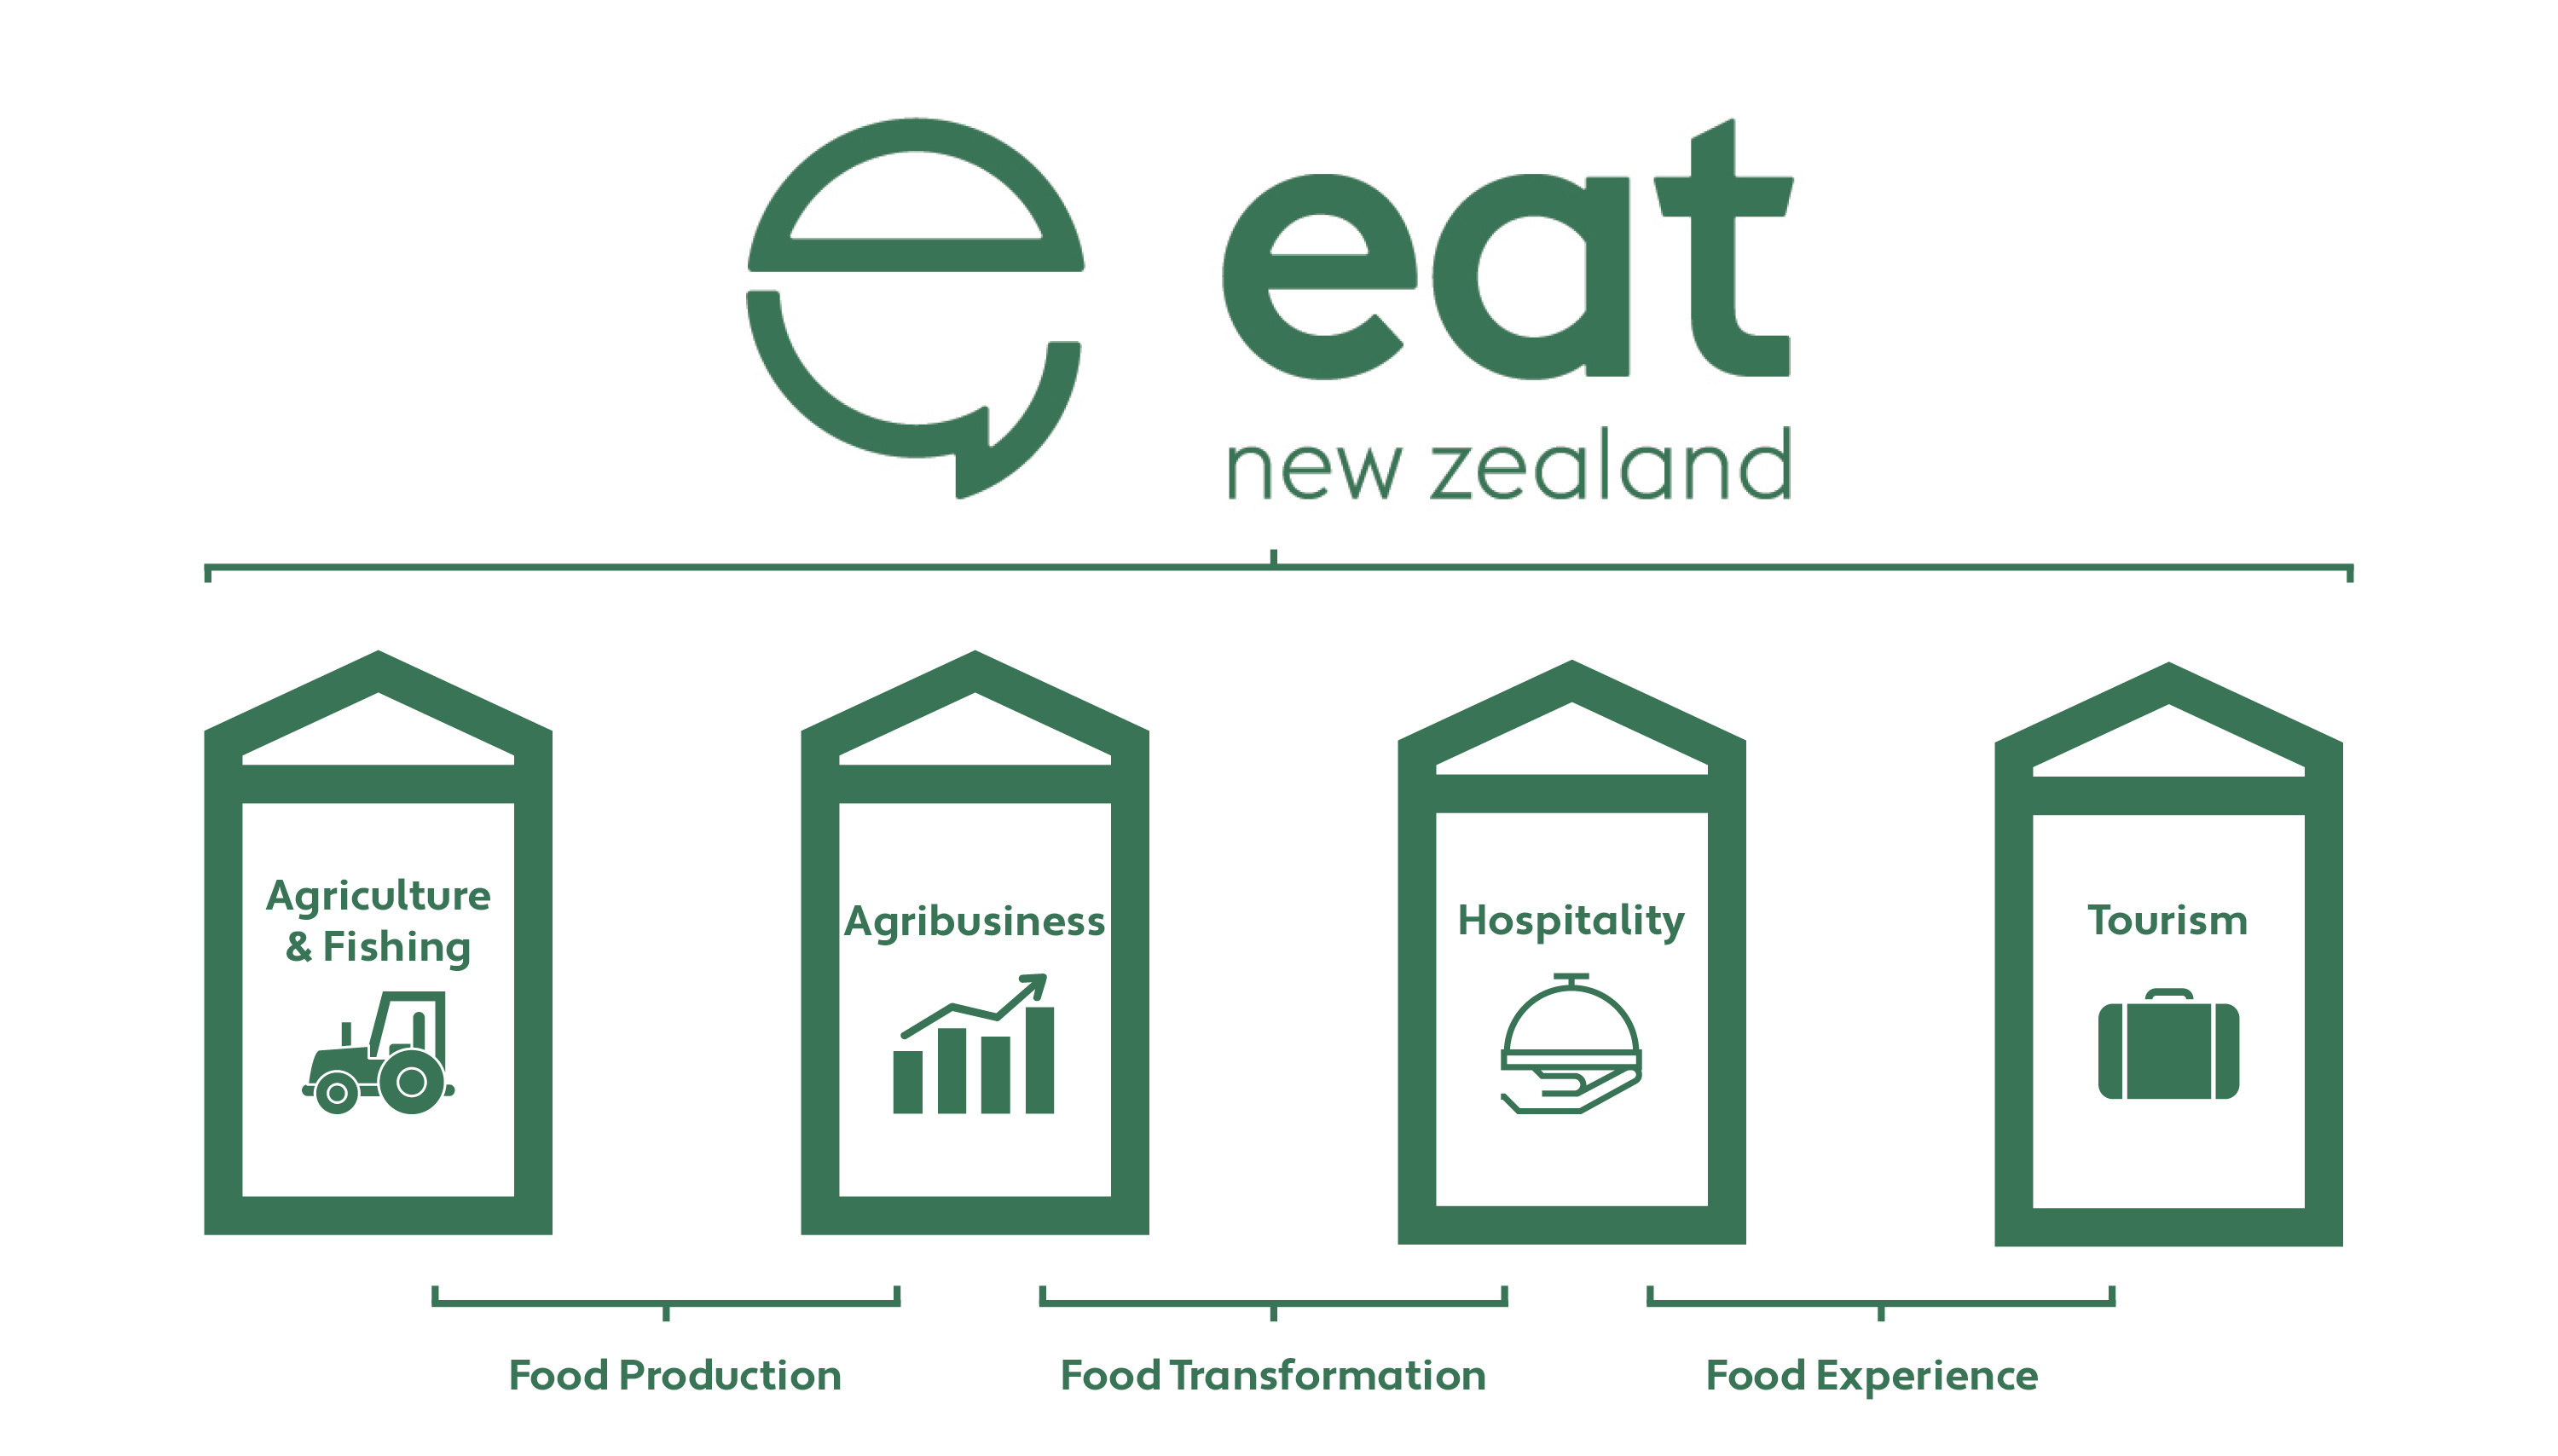 ConversatioNZ 4.0 National Food Strategy Webinar Recording